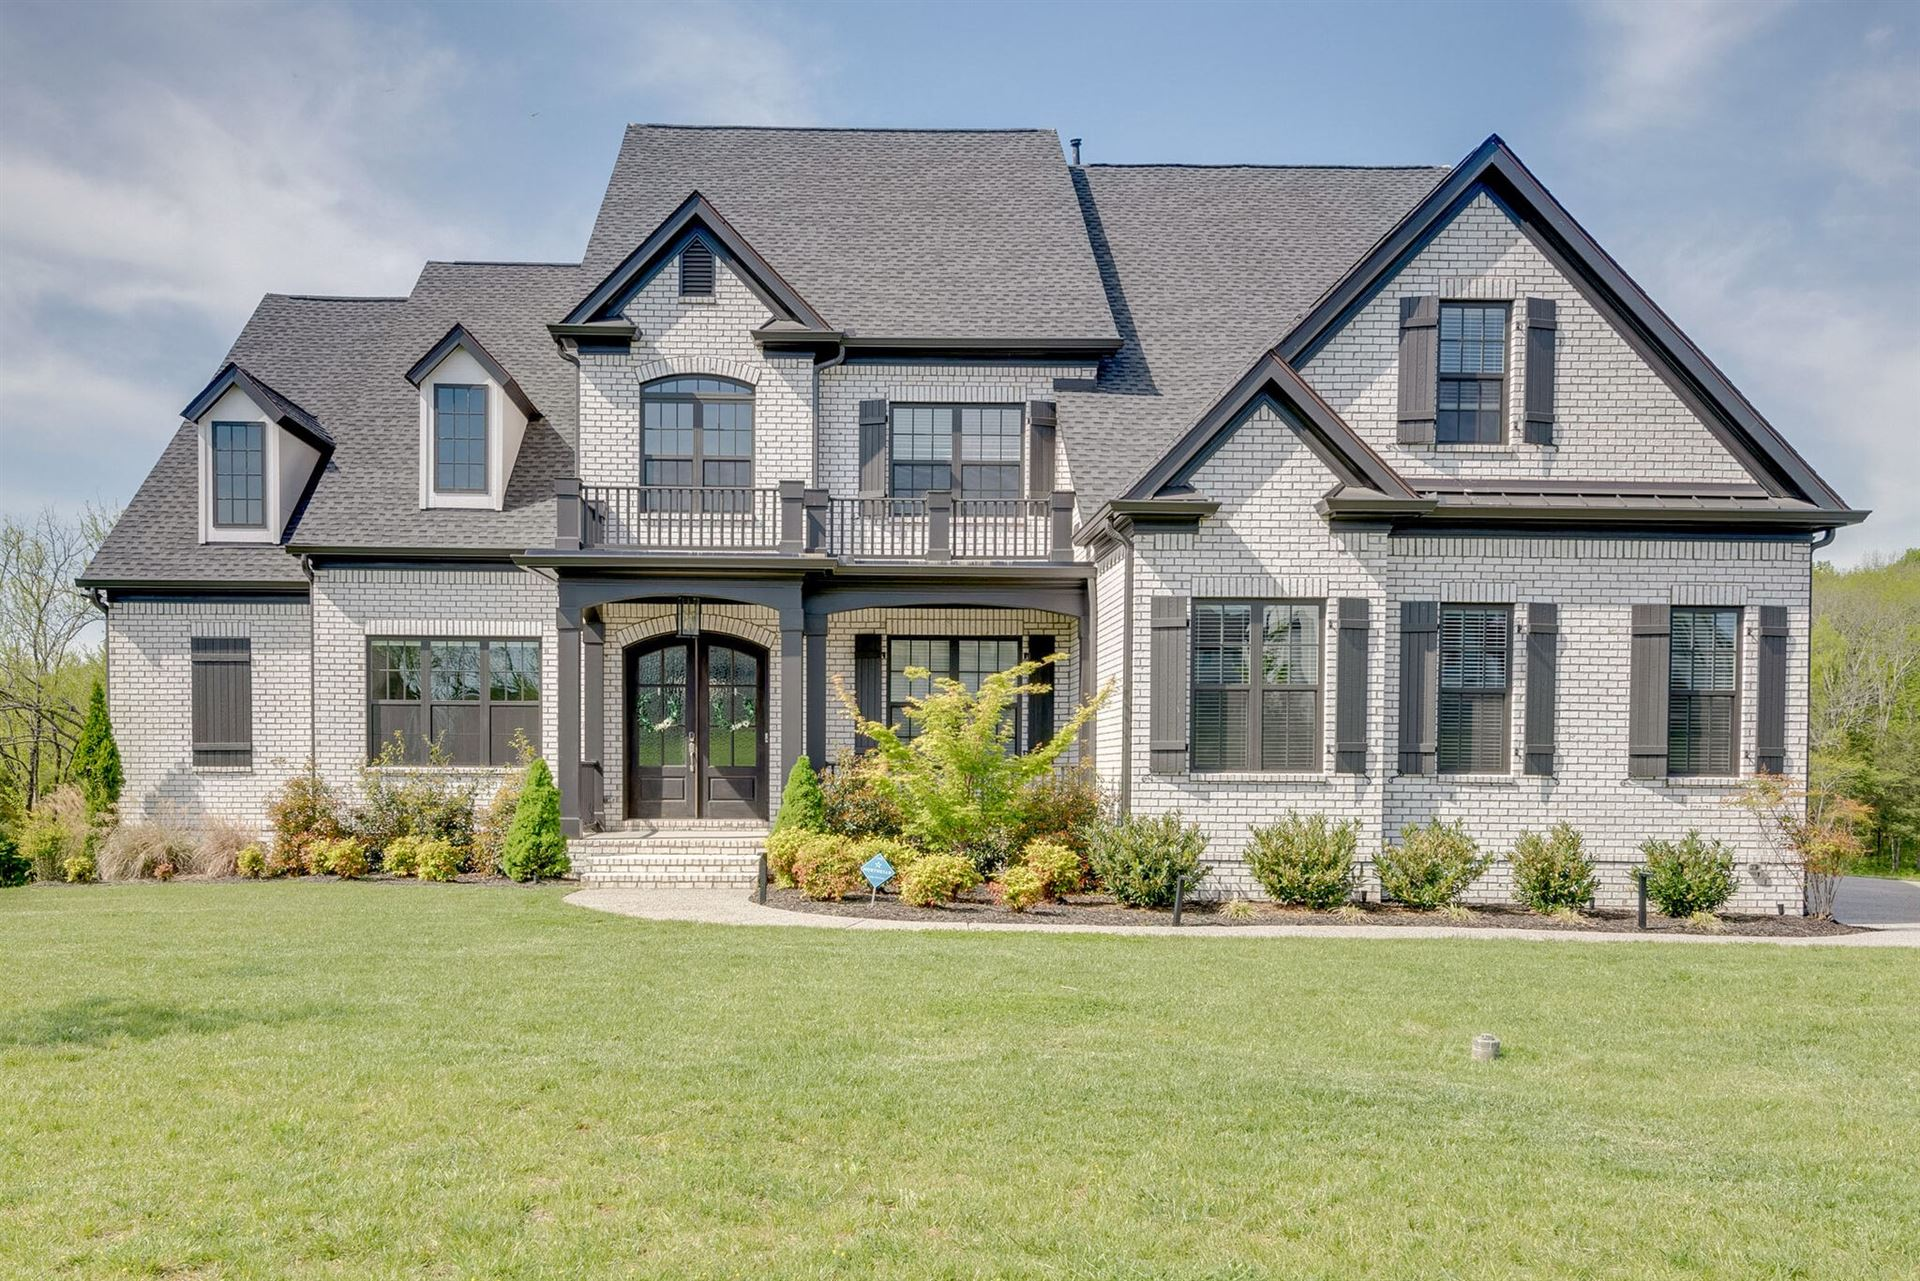 1875 Charity Dr, Brentwood, TN 37027 - MLS#: 2247673